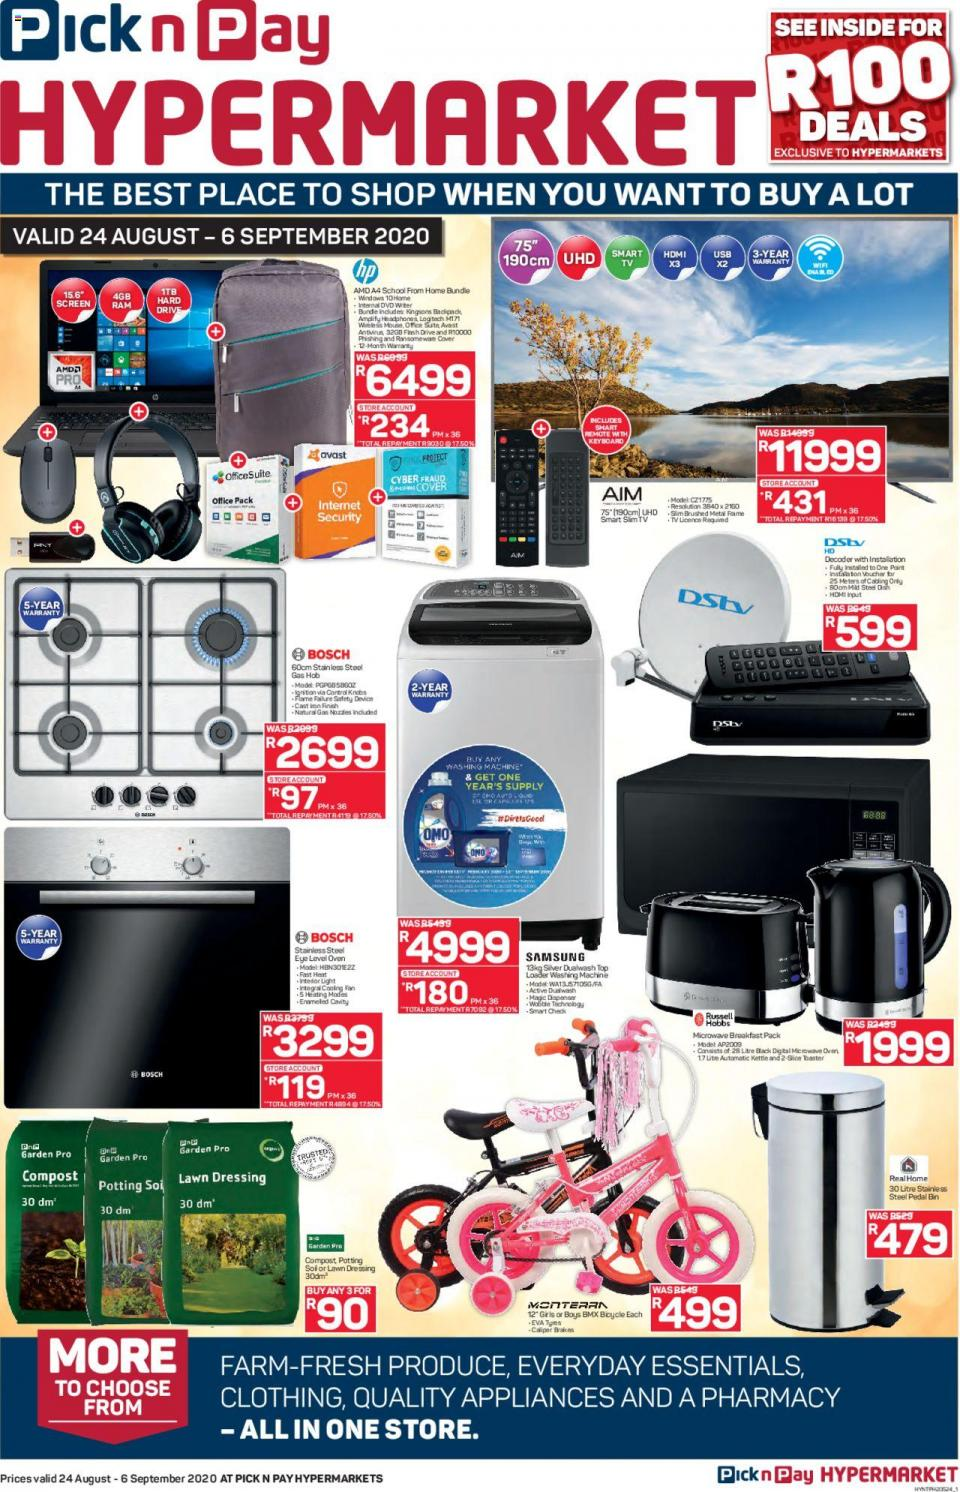 pick n pay specials hypermarkets 24 august 2020